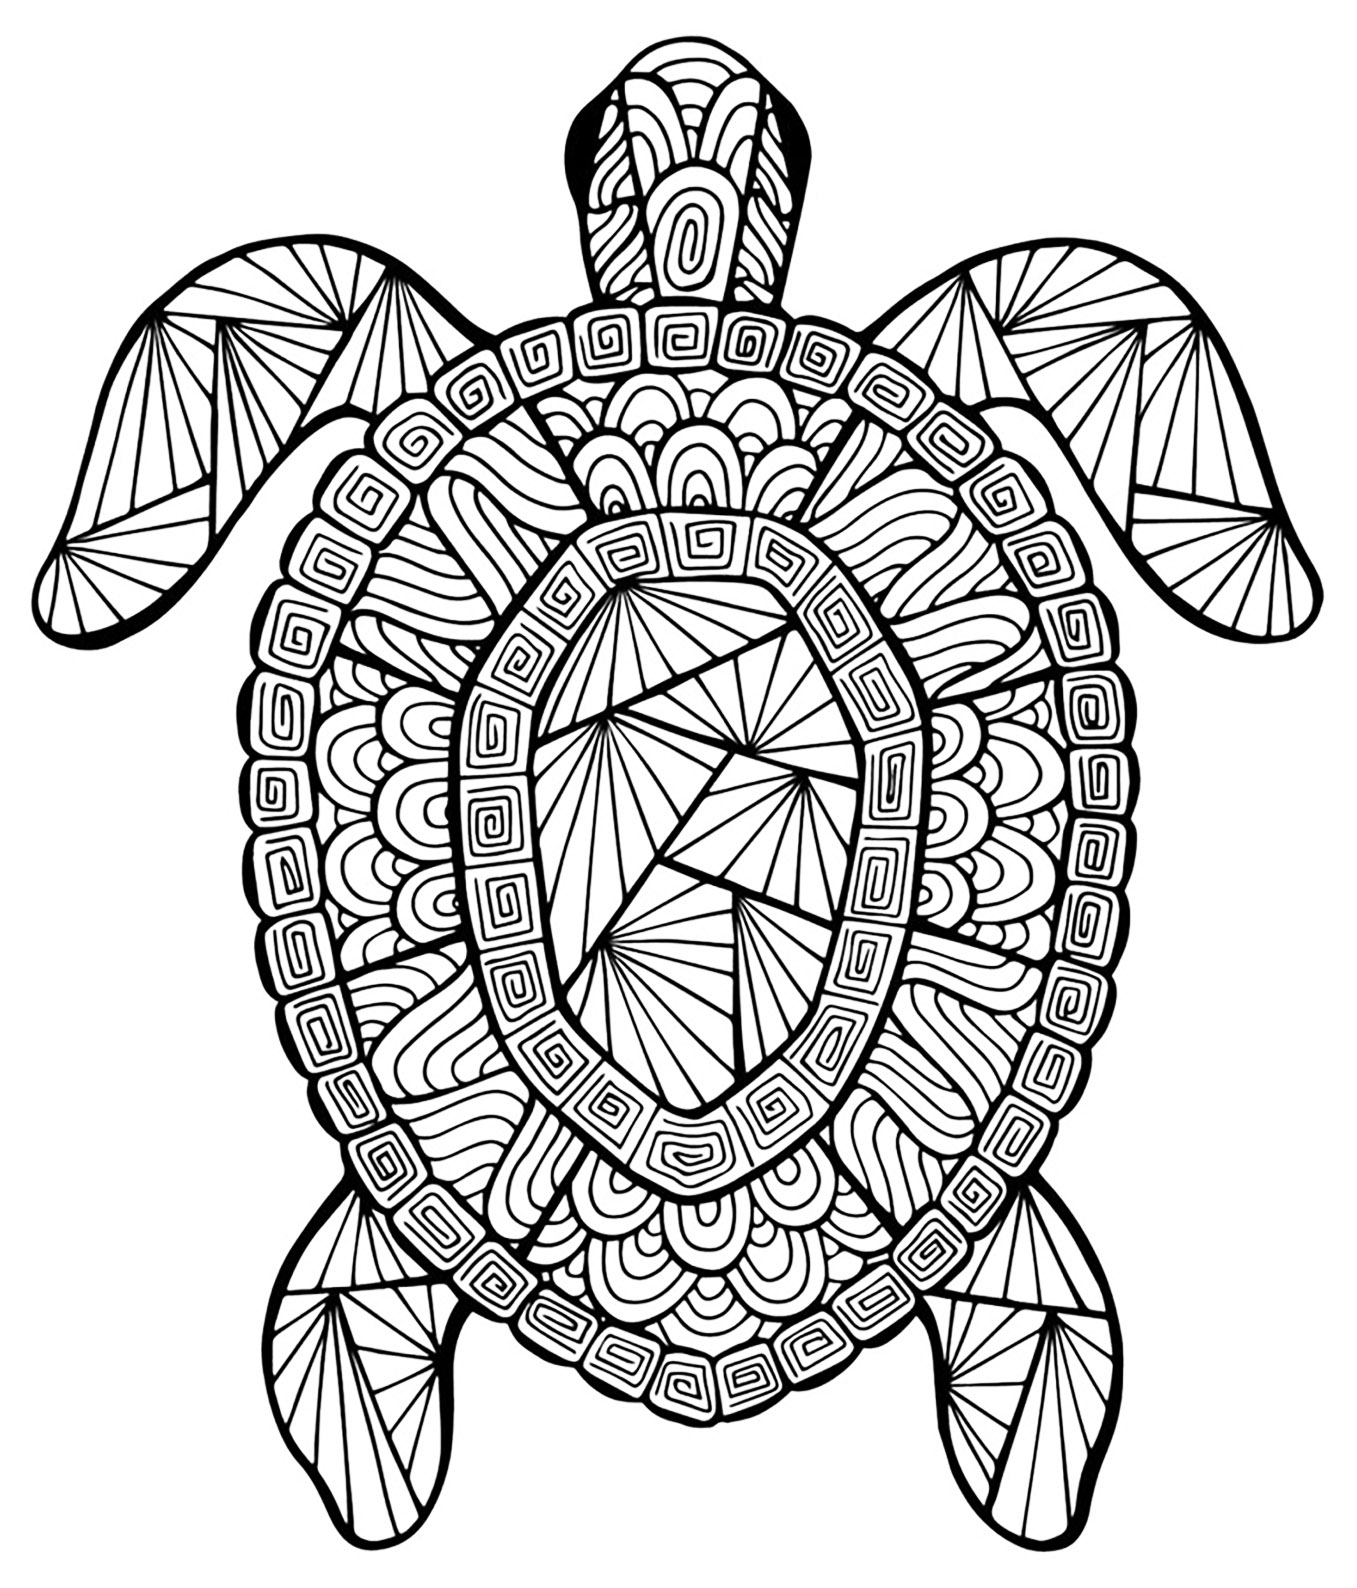 www coloring pages of animals 30 free coloring pages a geometric animal coloring animals www coloring of pages